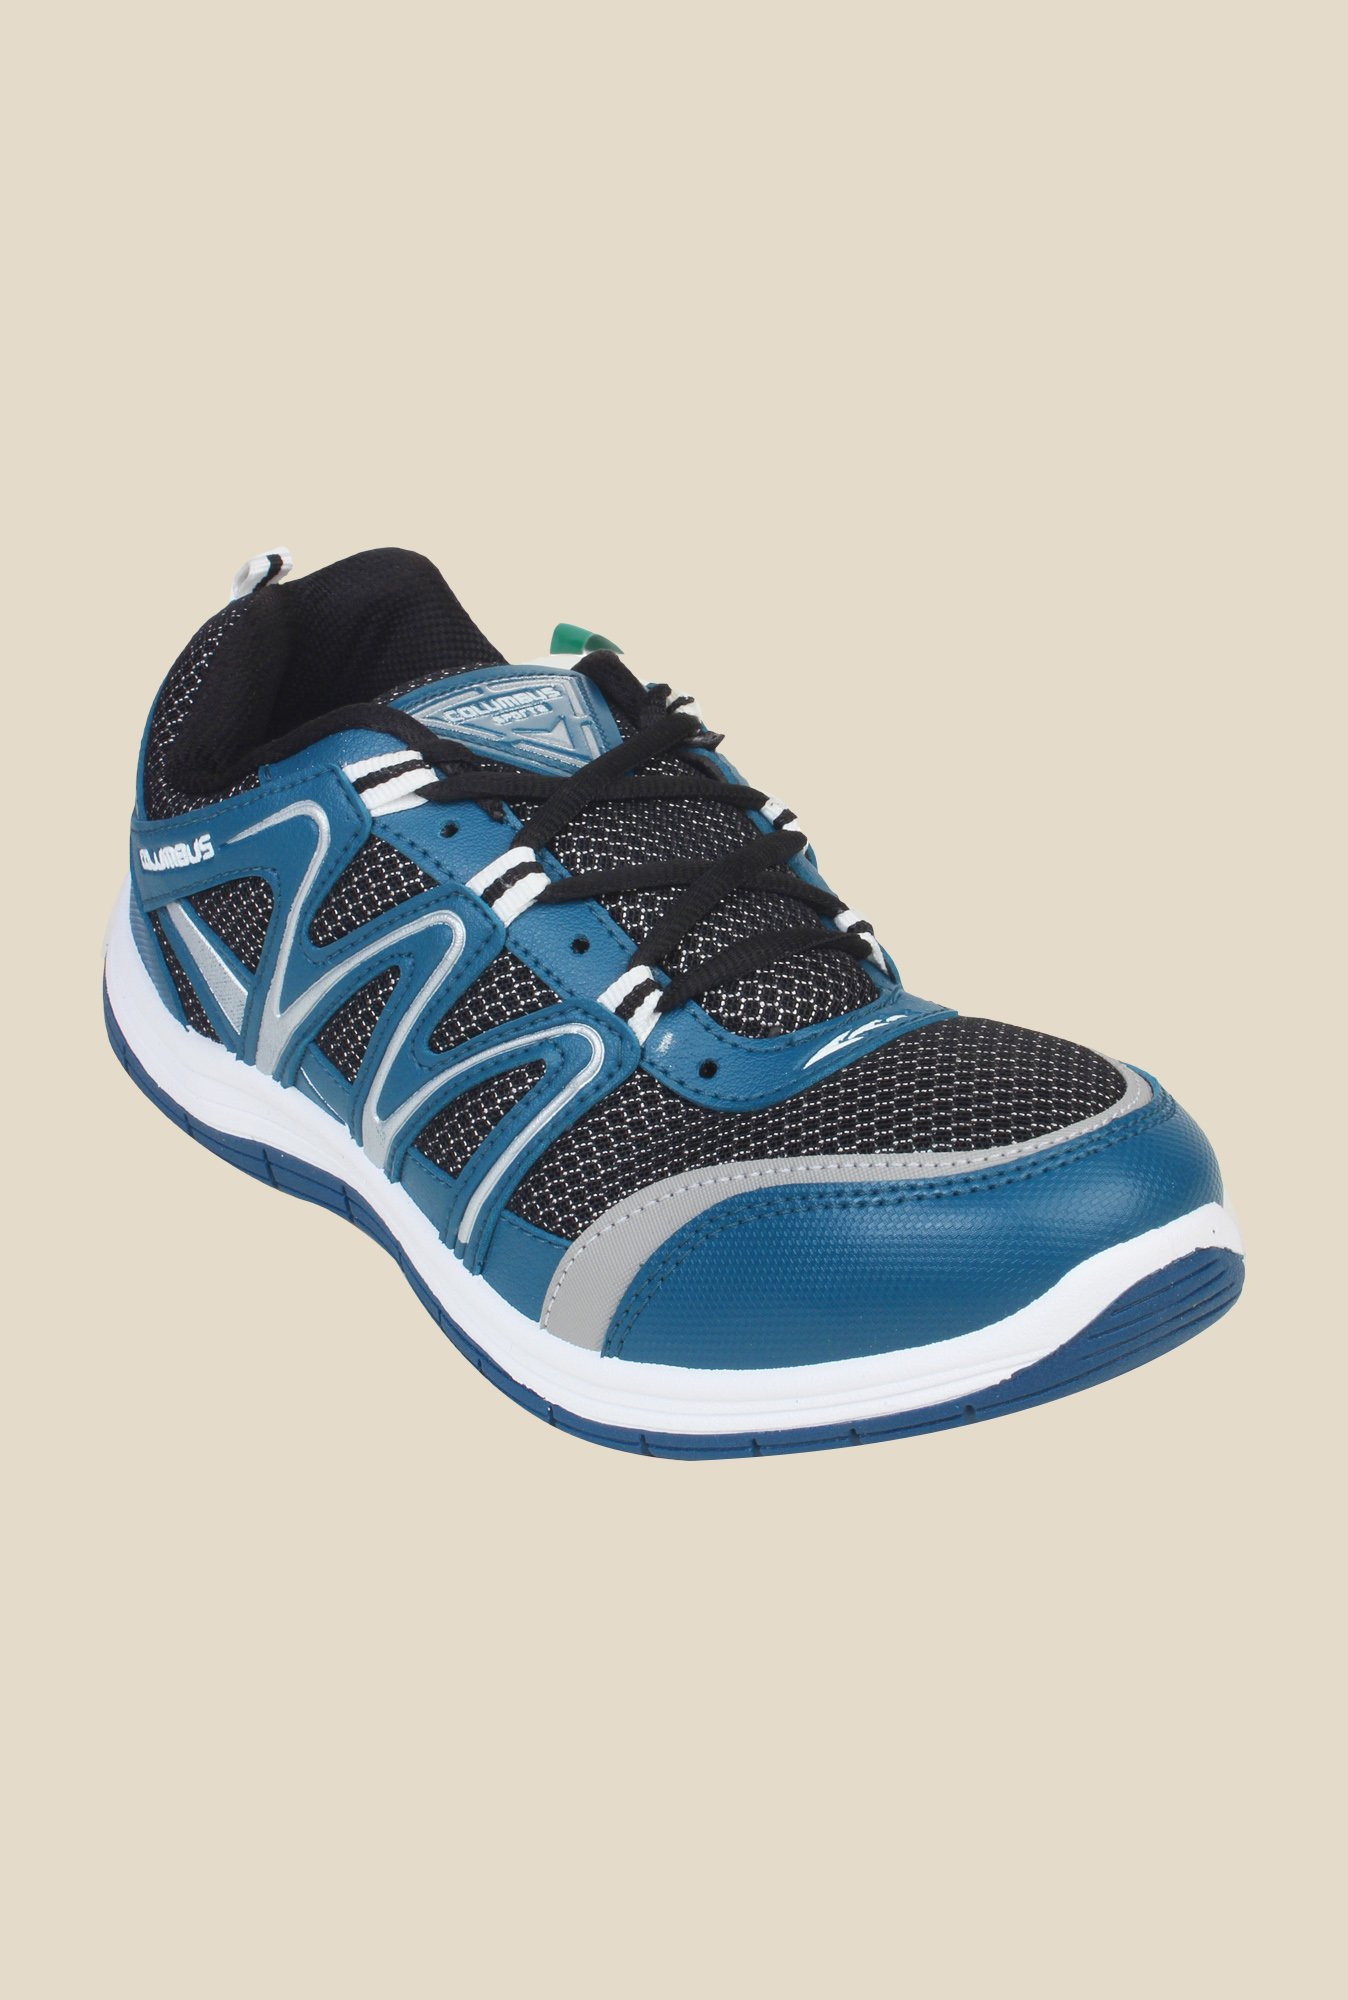 Columbus FM-2 Blue & Black Running Shoes